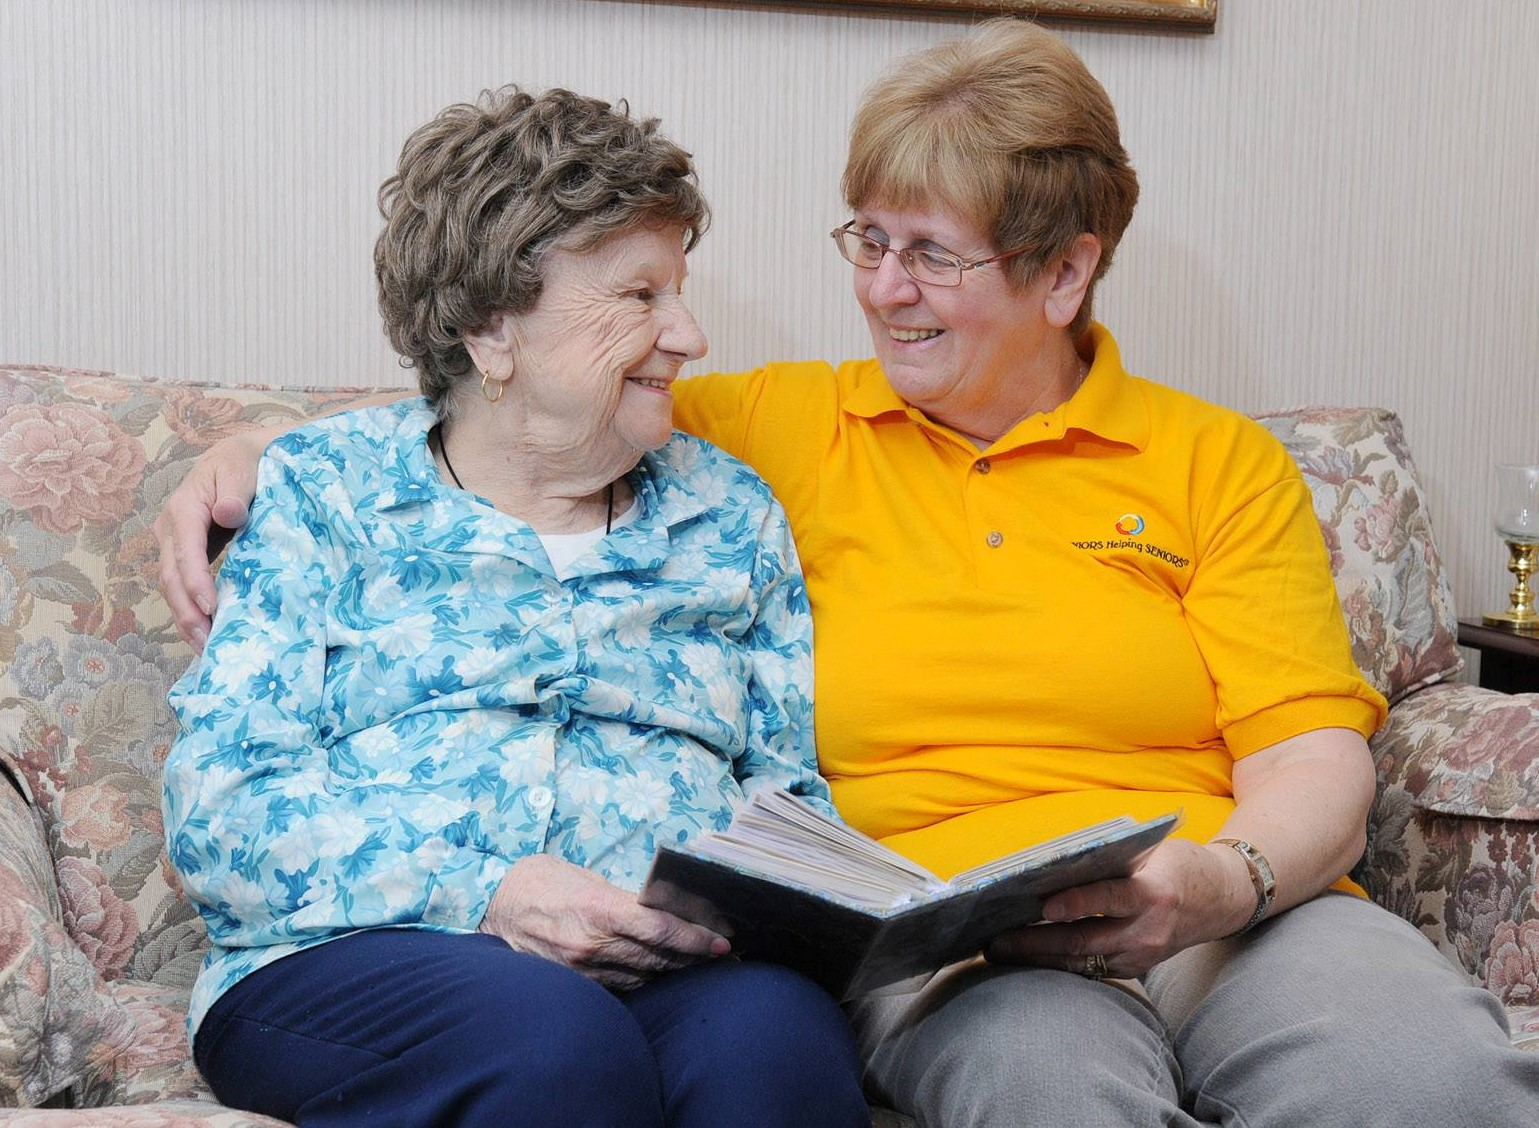 Seniors Helping Seniors Looking to Hire Part-Time Caregivers at Job Fair on June 19 in Exton